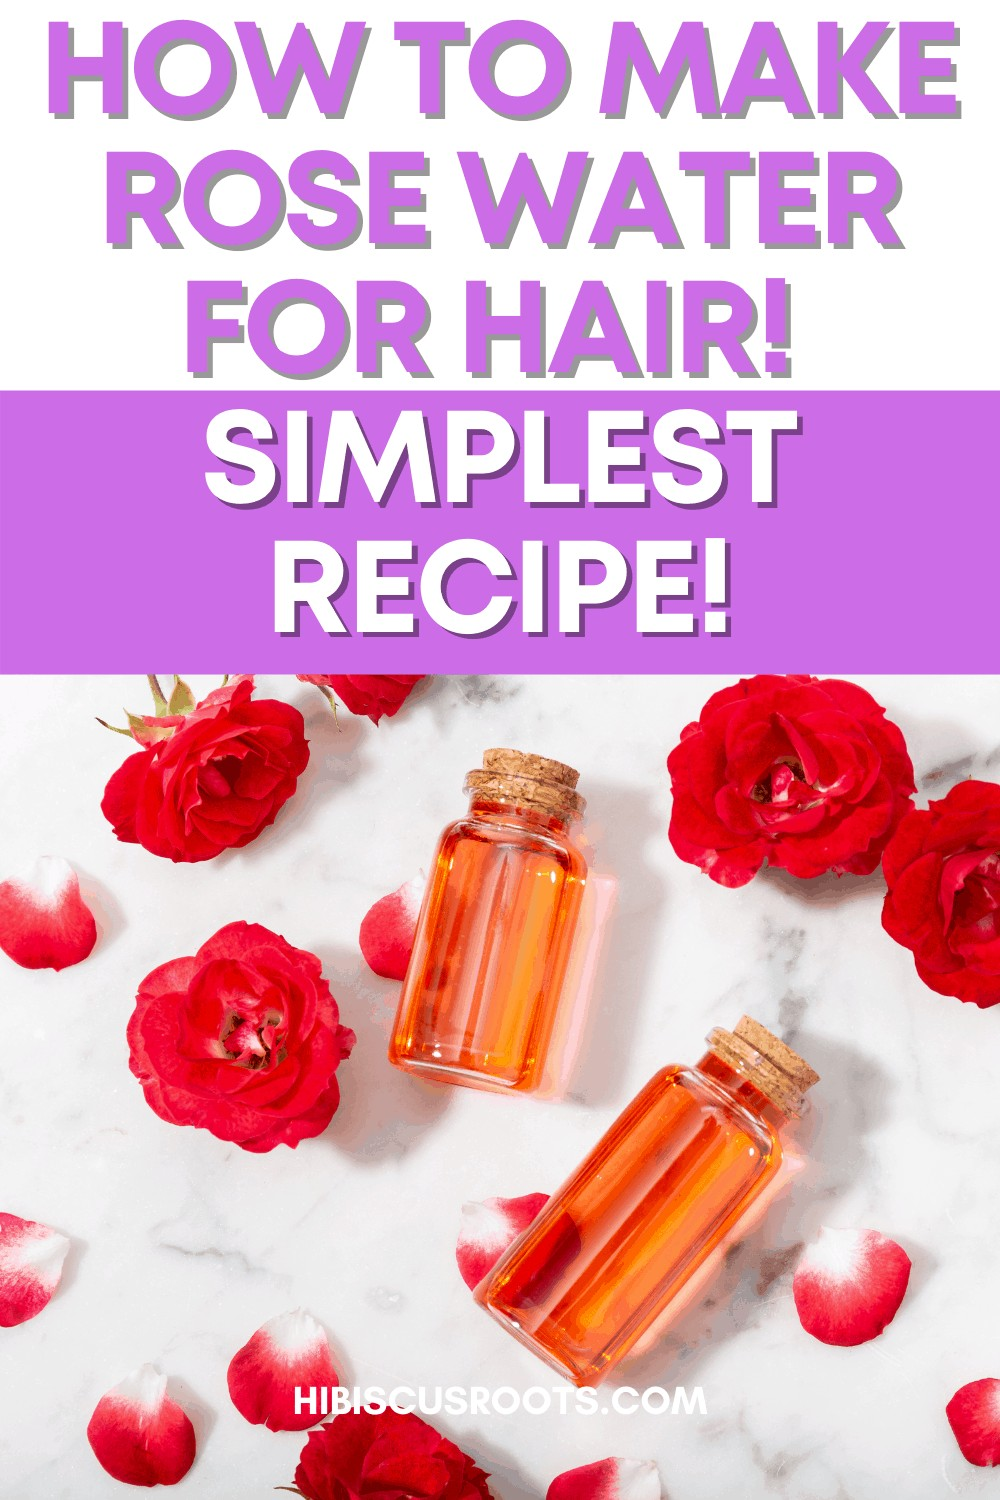 How to Make Rose Water for Natural Hair - Easy Recipe!